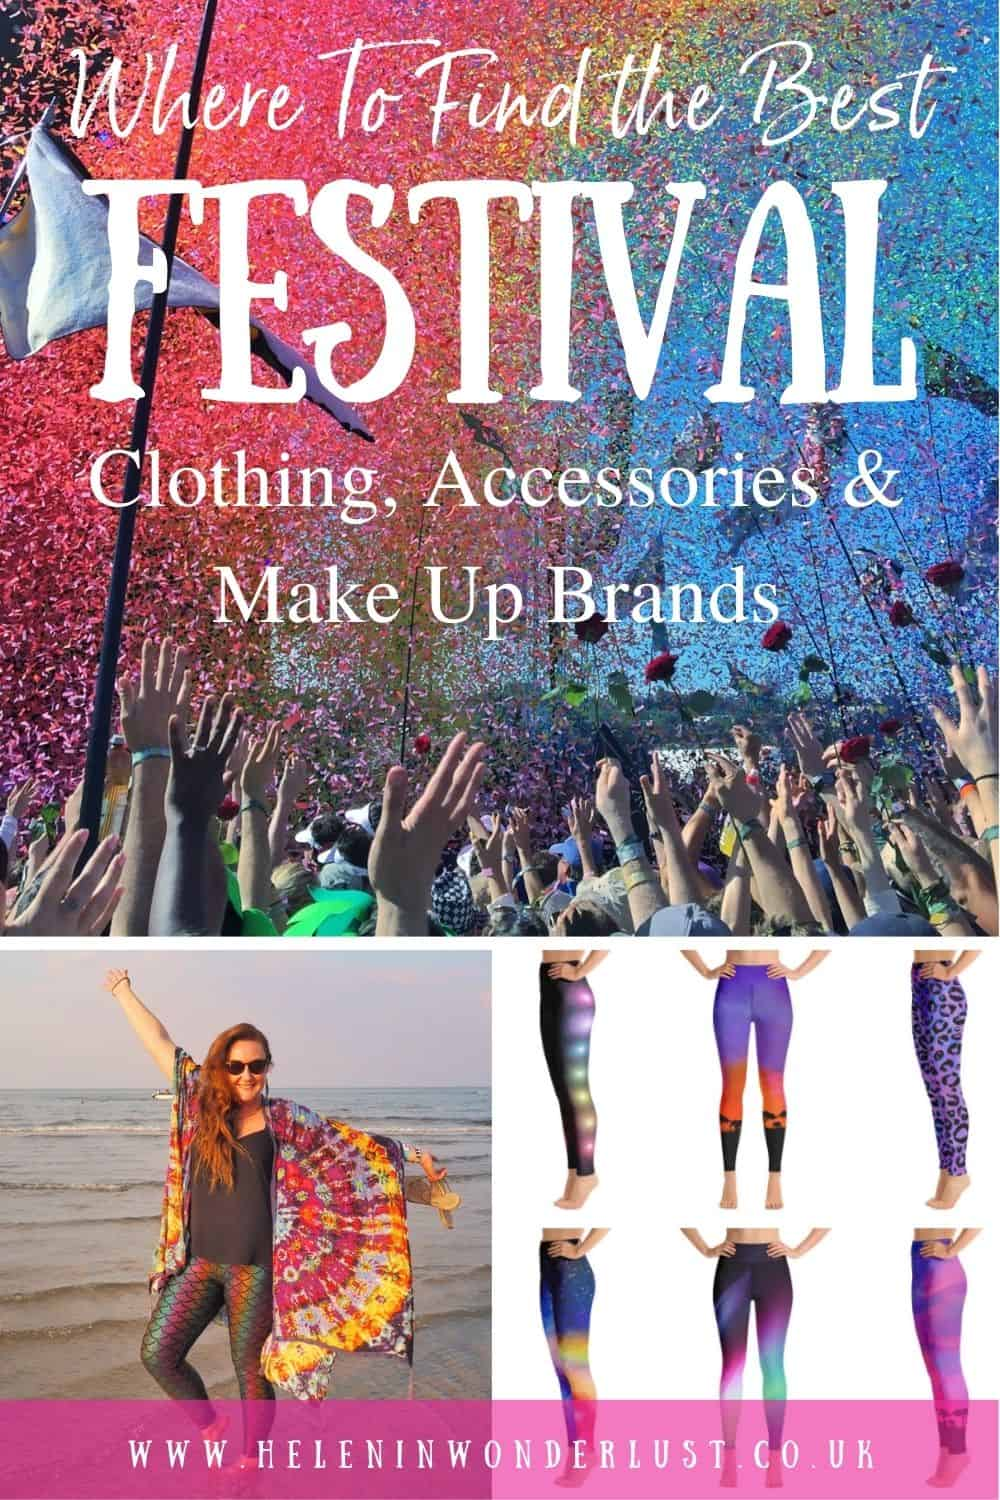 Where To Find the Best Festival Clothing, Accessories & Make Up